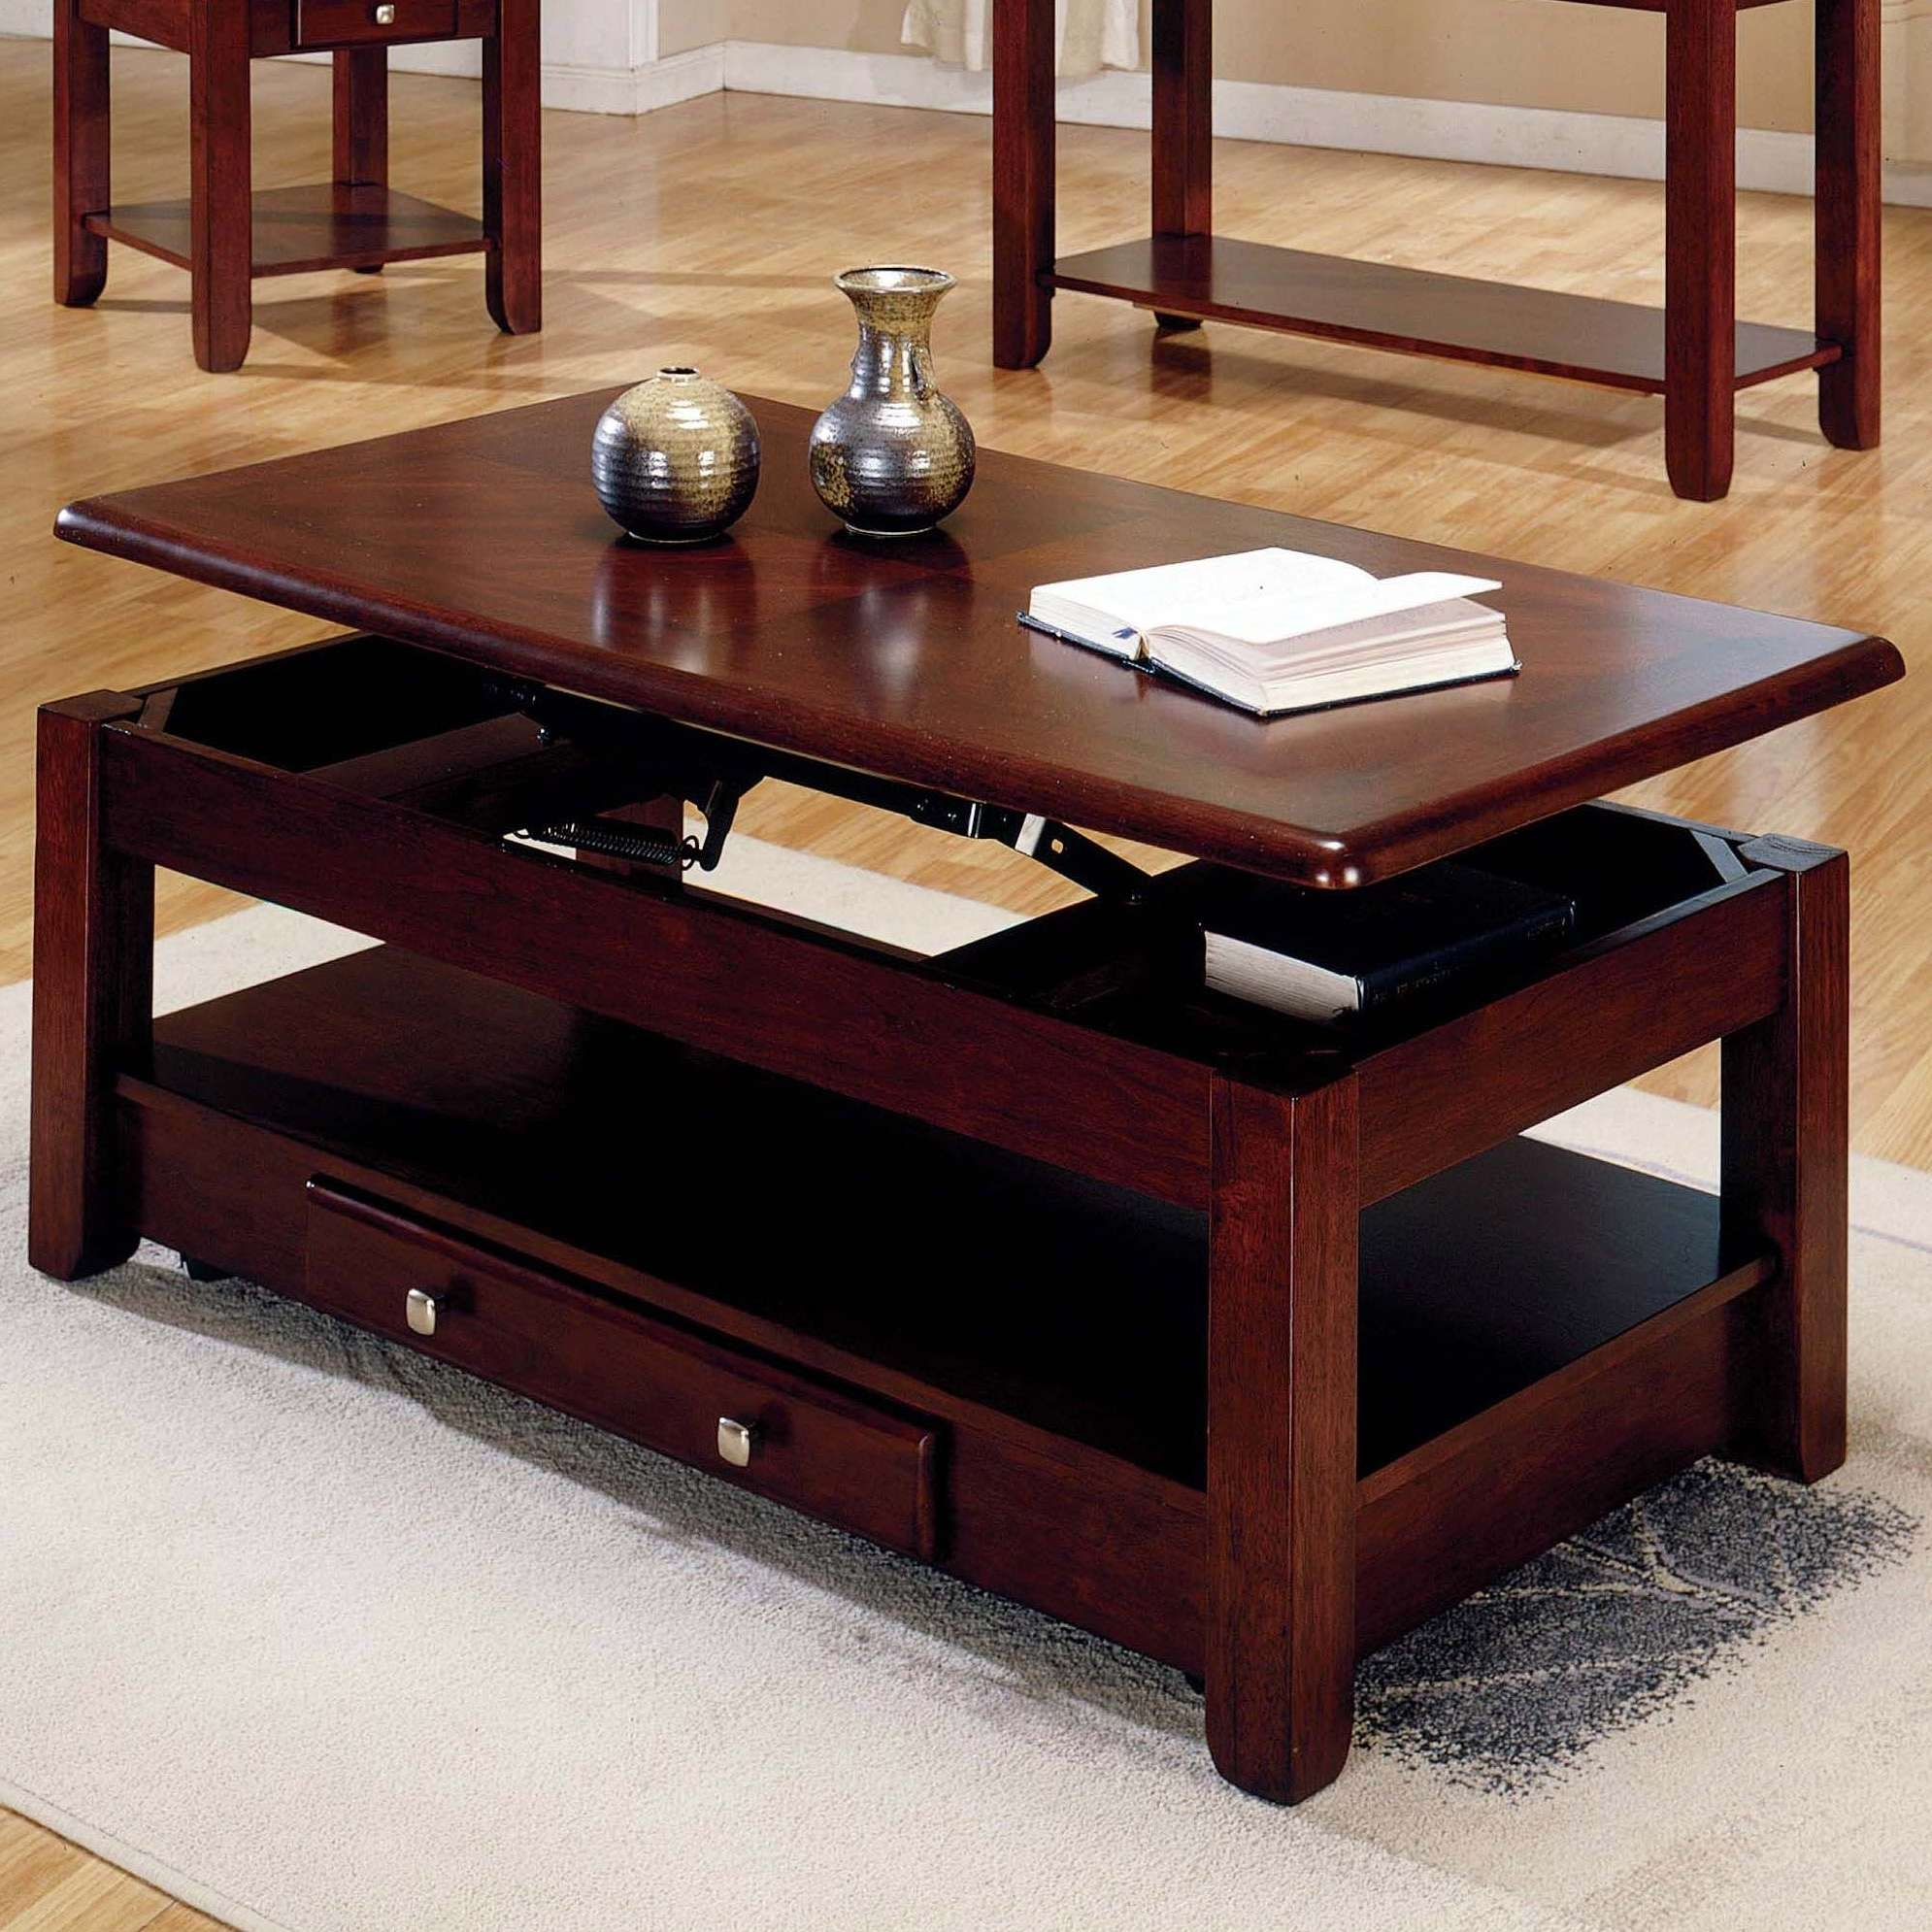 Coffee Table : Amazing Coffee Table Square Cherry Coffee Table For Most Recent Coffee Tables With Lift Top Storage (View 13 of 20)